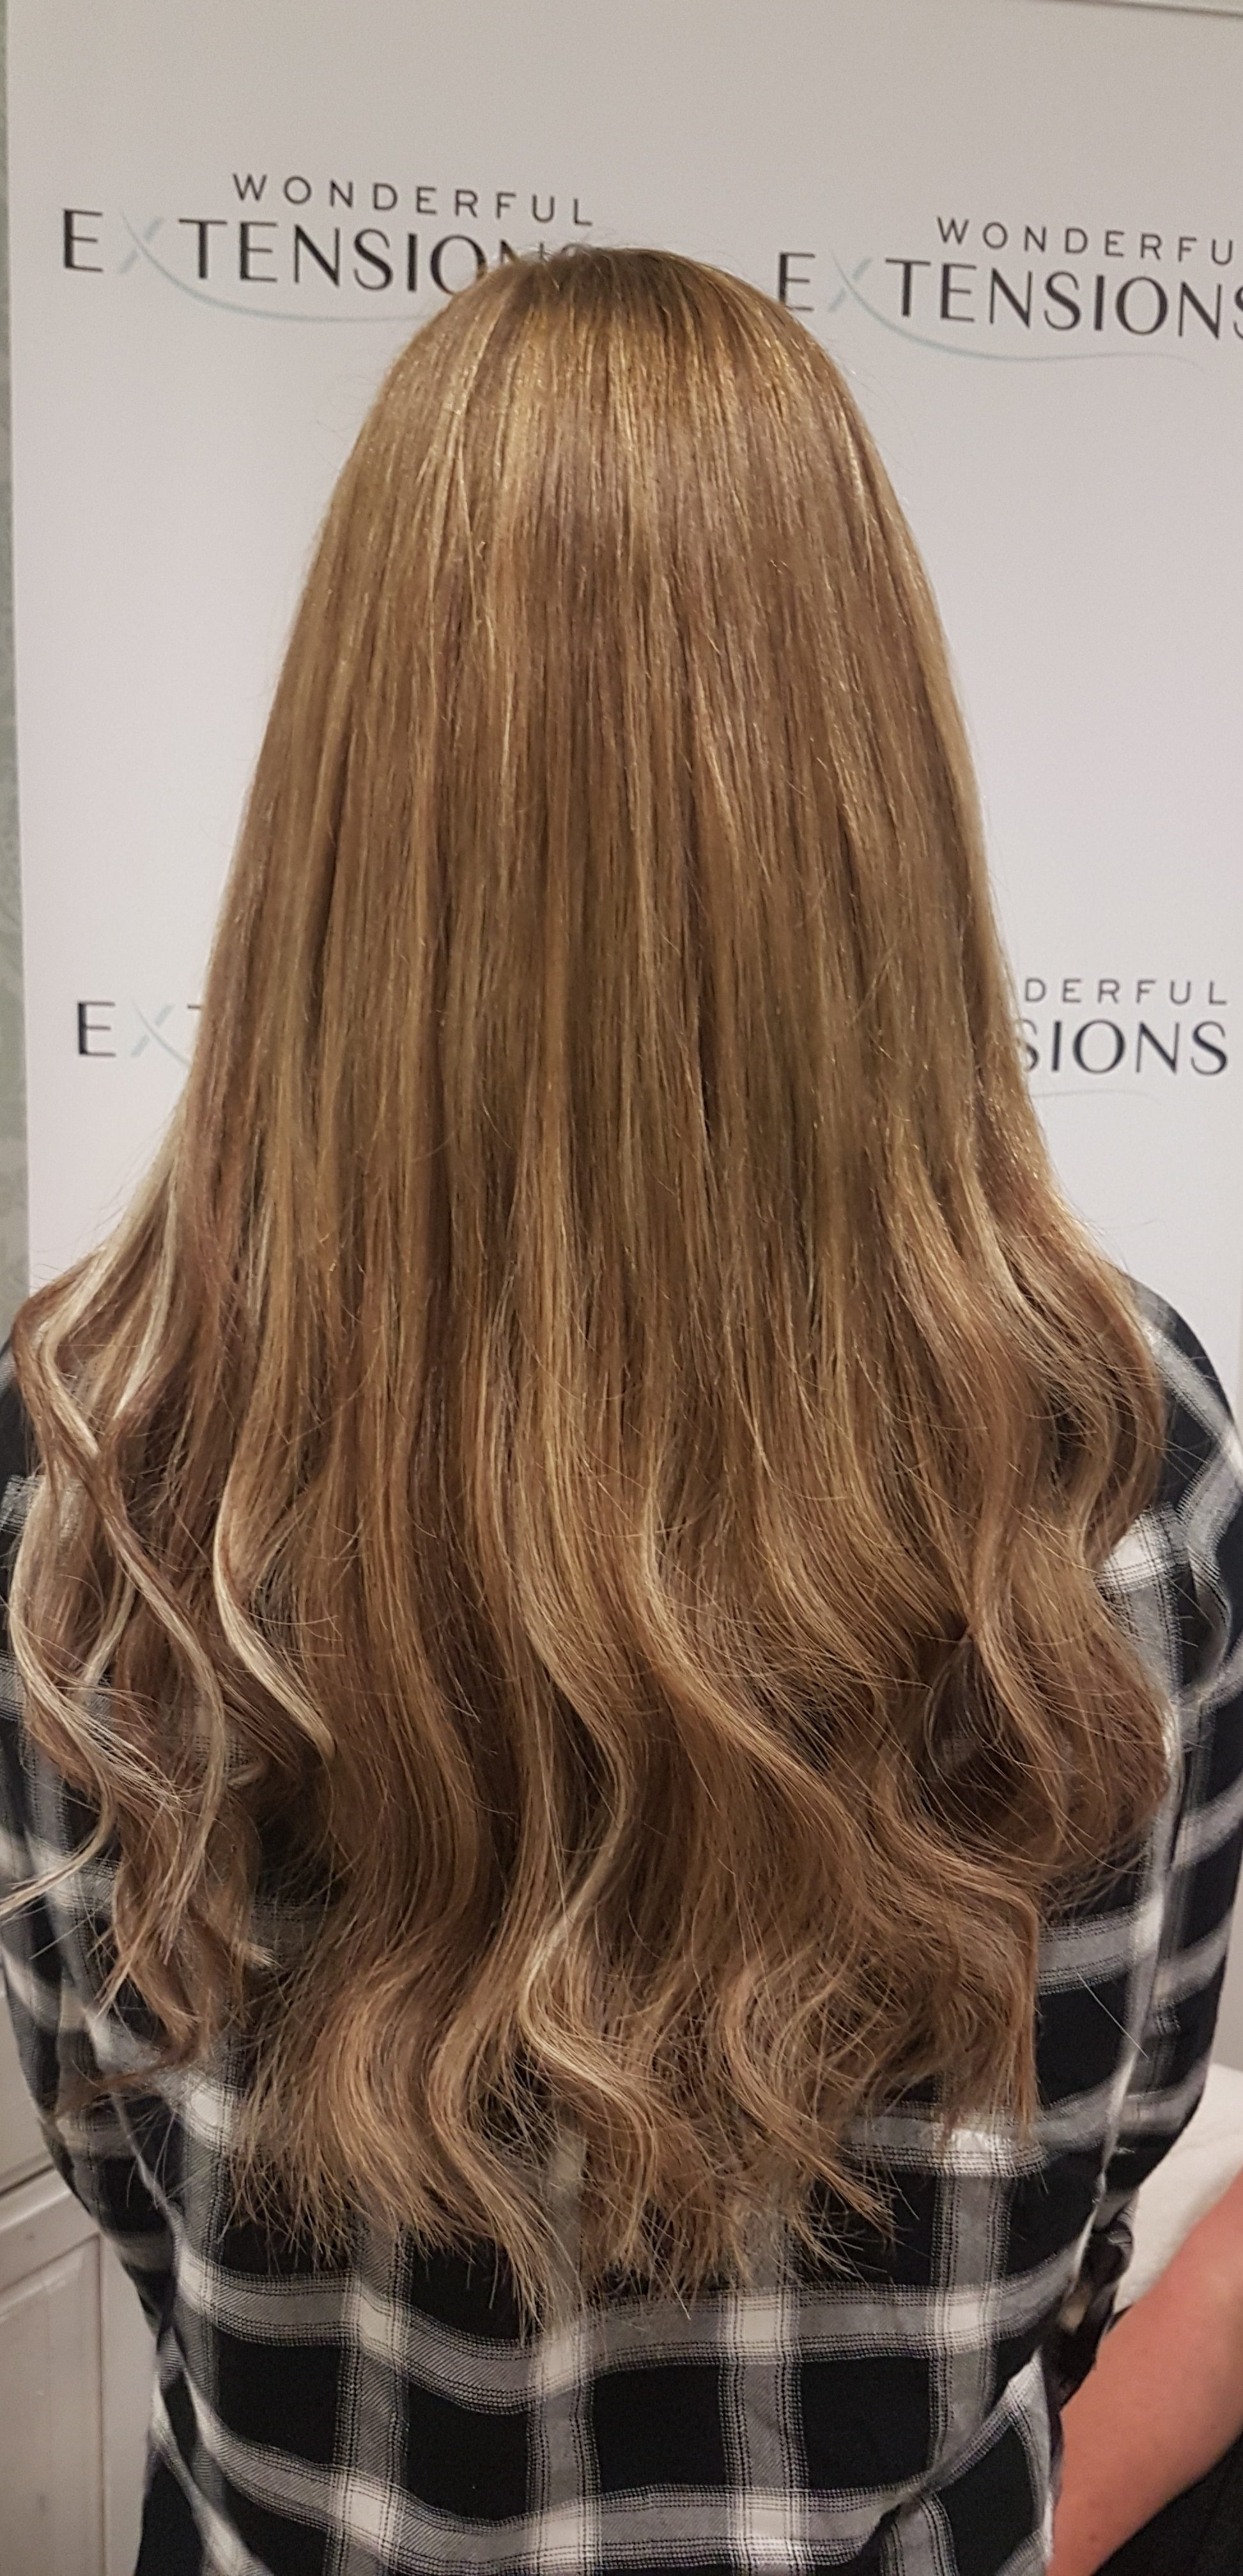 Hair Extensions London - Light Brown